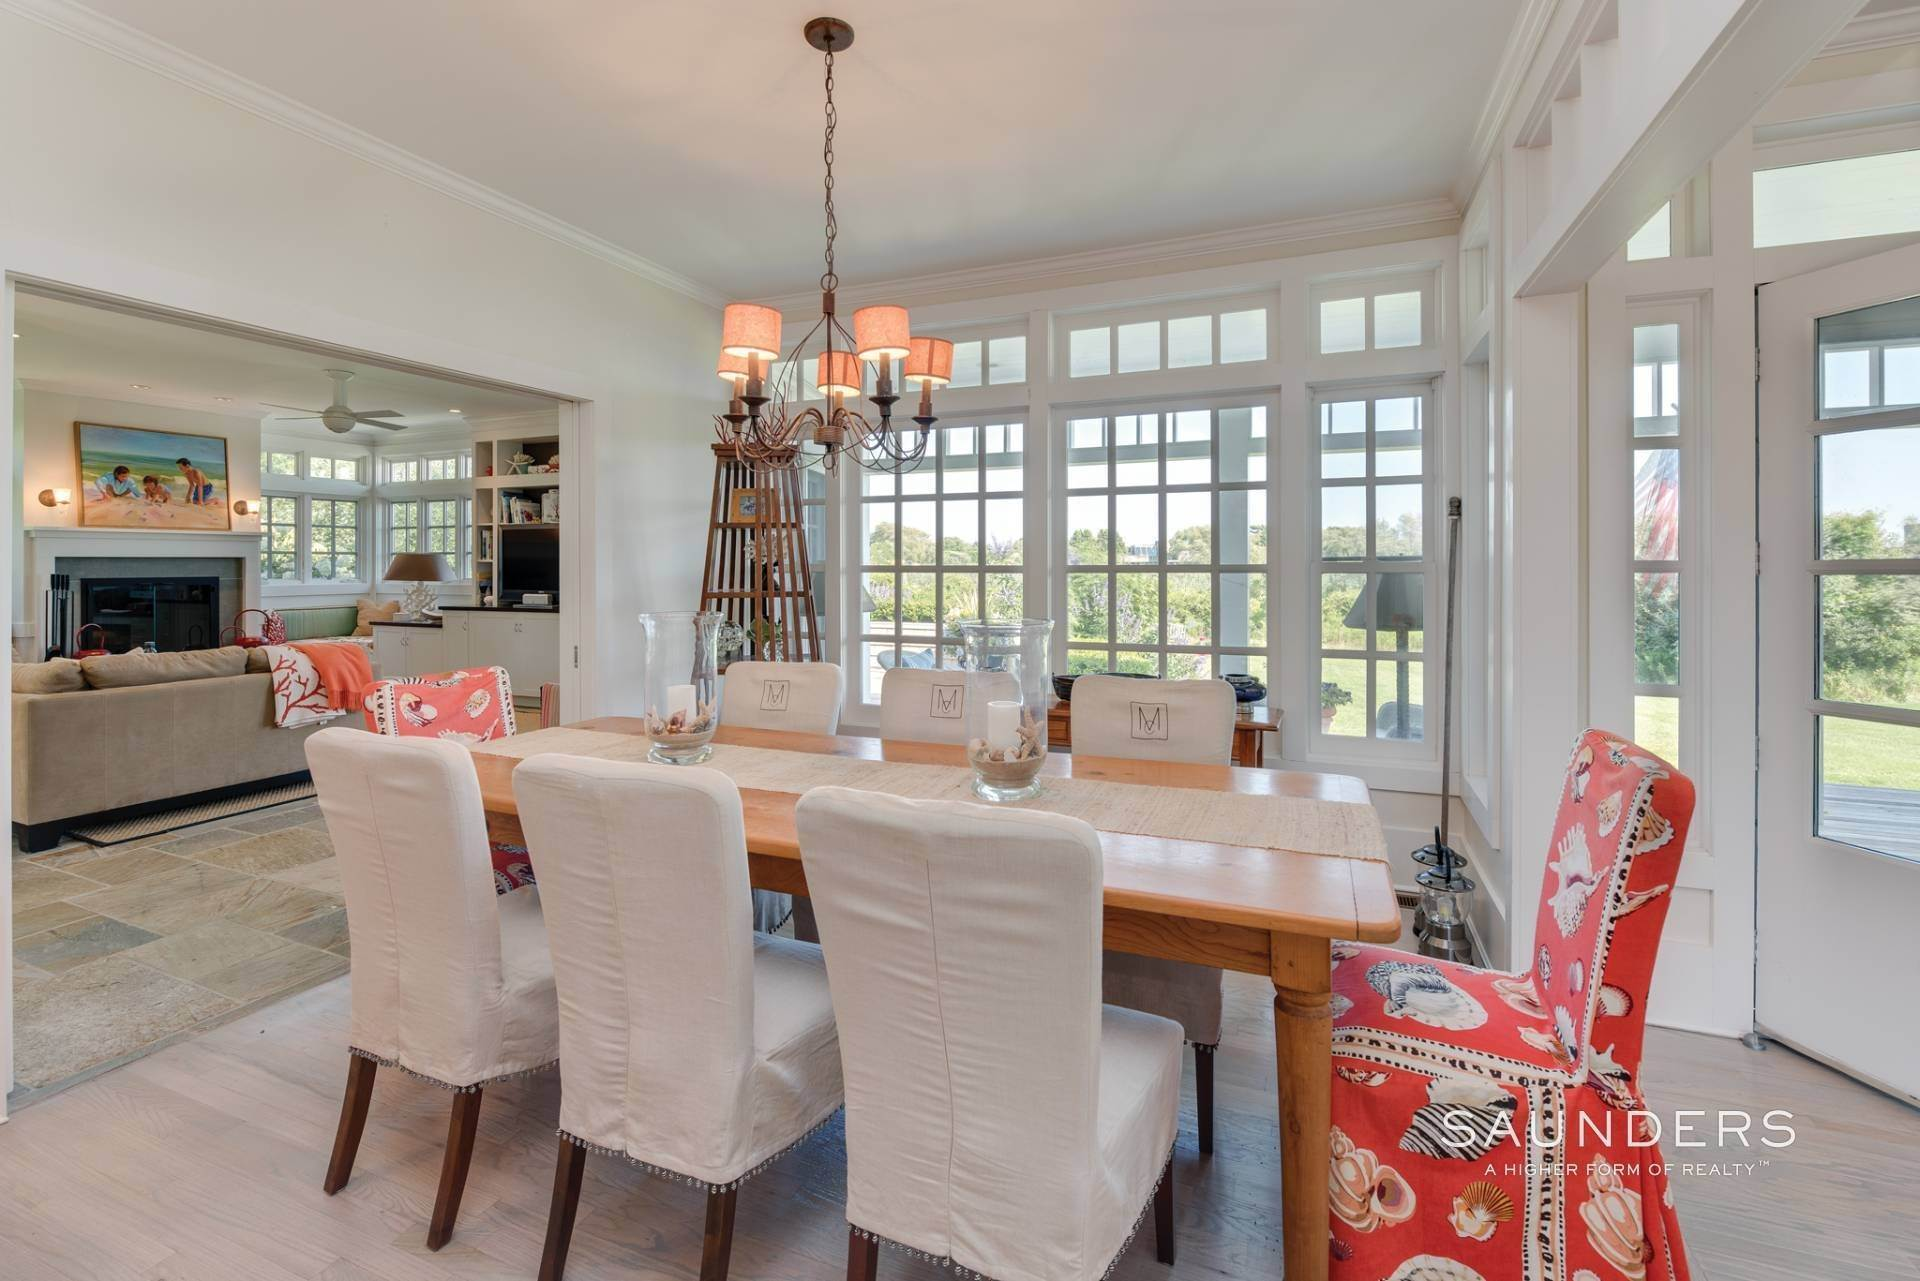 5. Single Family Homes for Sale at Bridgehampton South Waterfront With Dock & Ocean View 87 Rose Way, Bridgehampton, Southampton Town, NY 11932